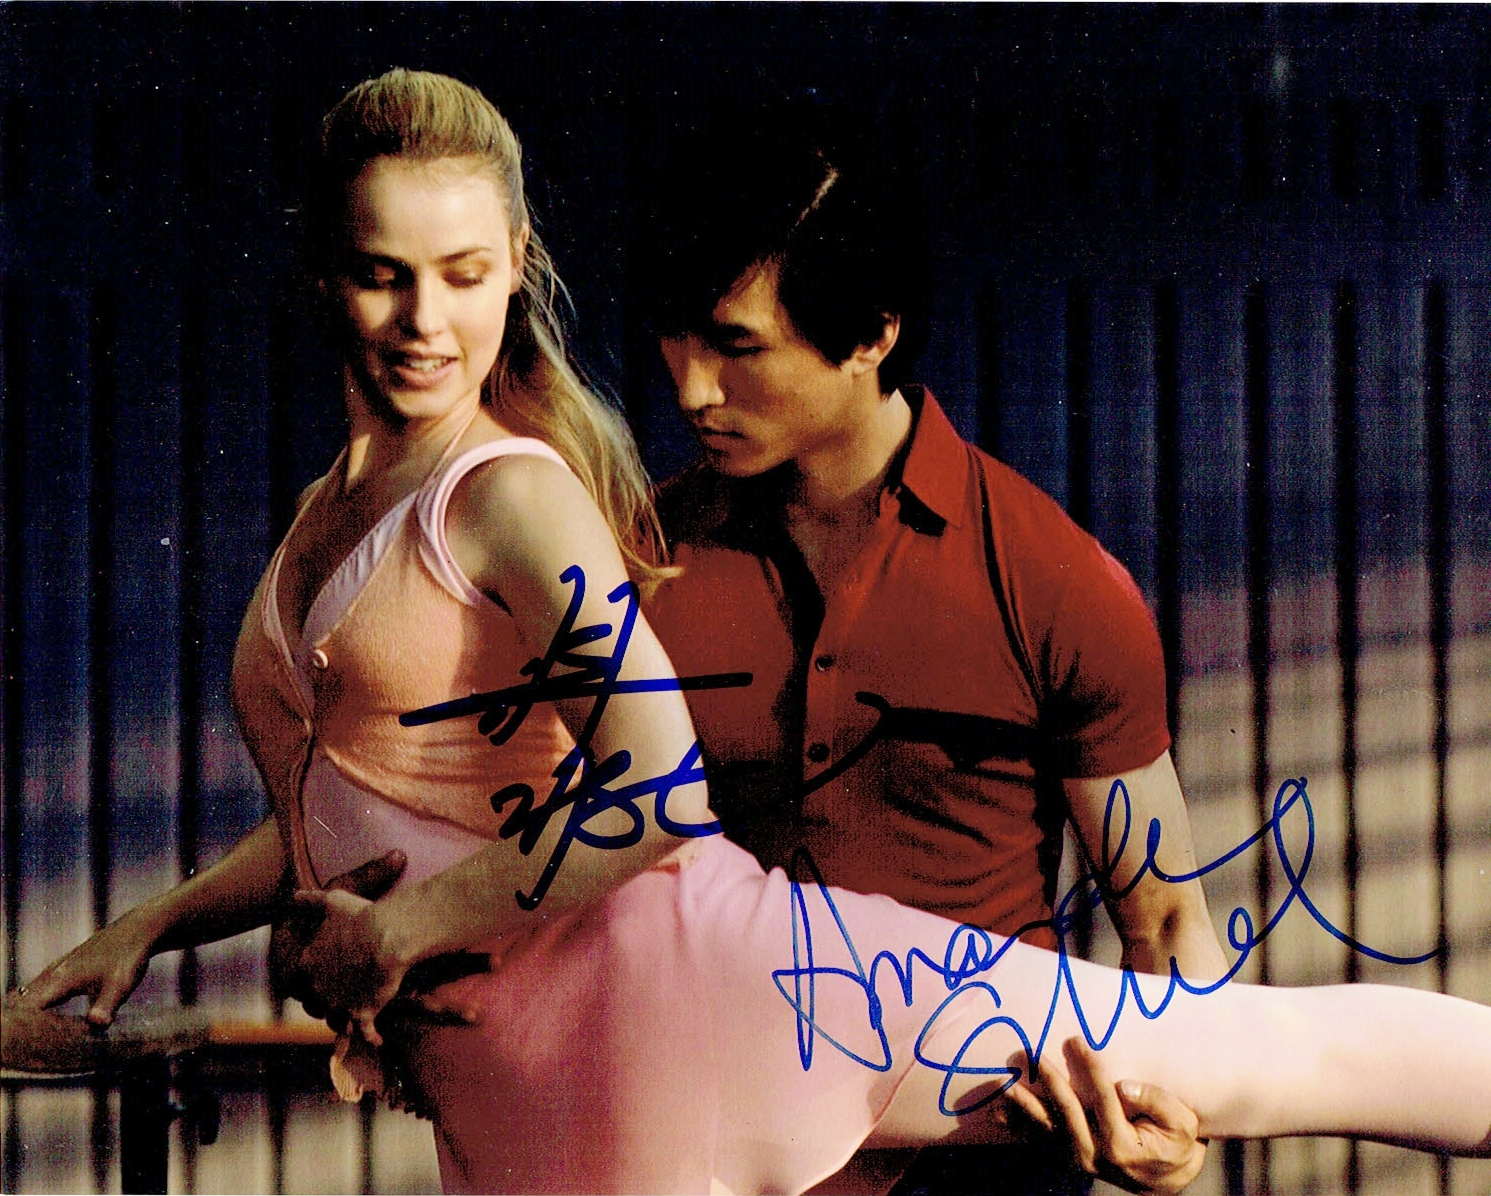 Chi Cao & Amanda Schull Signed Photo